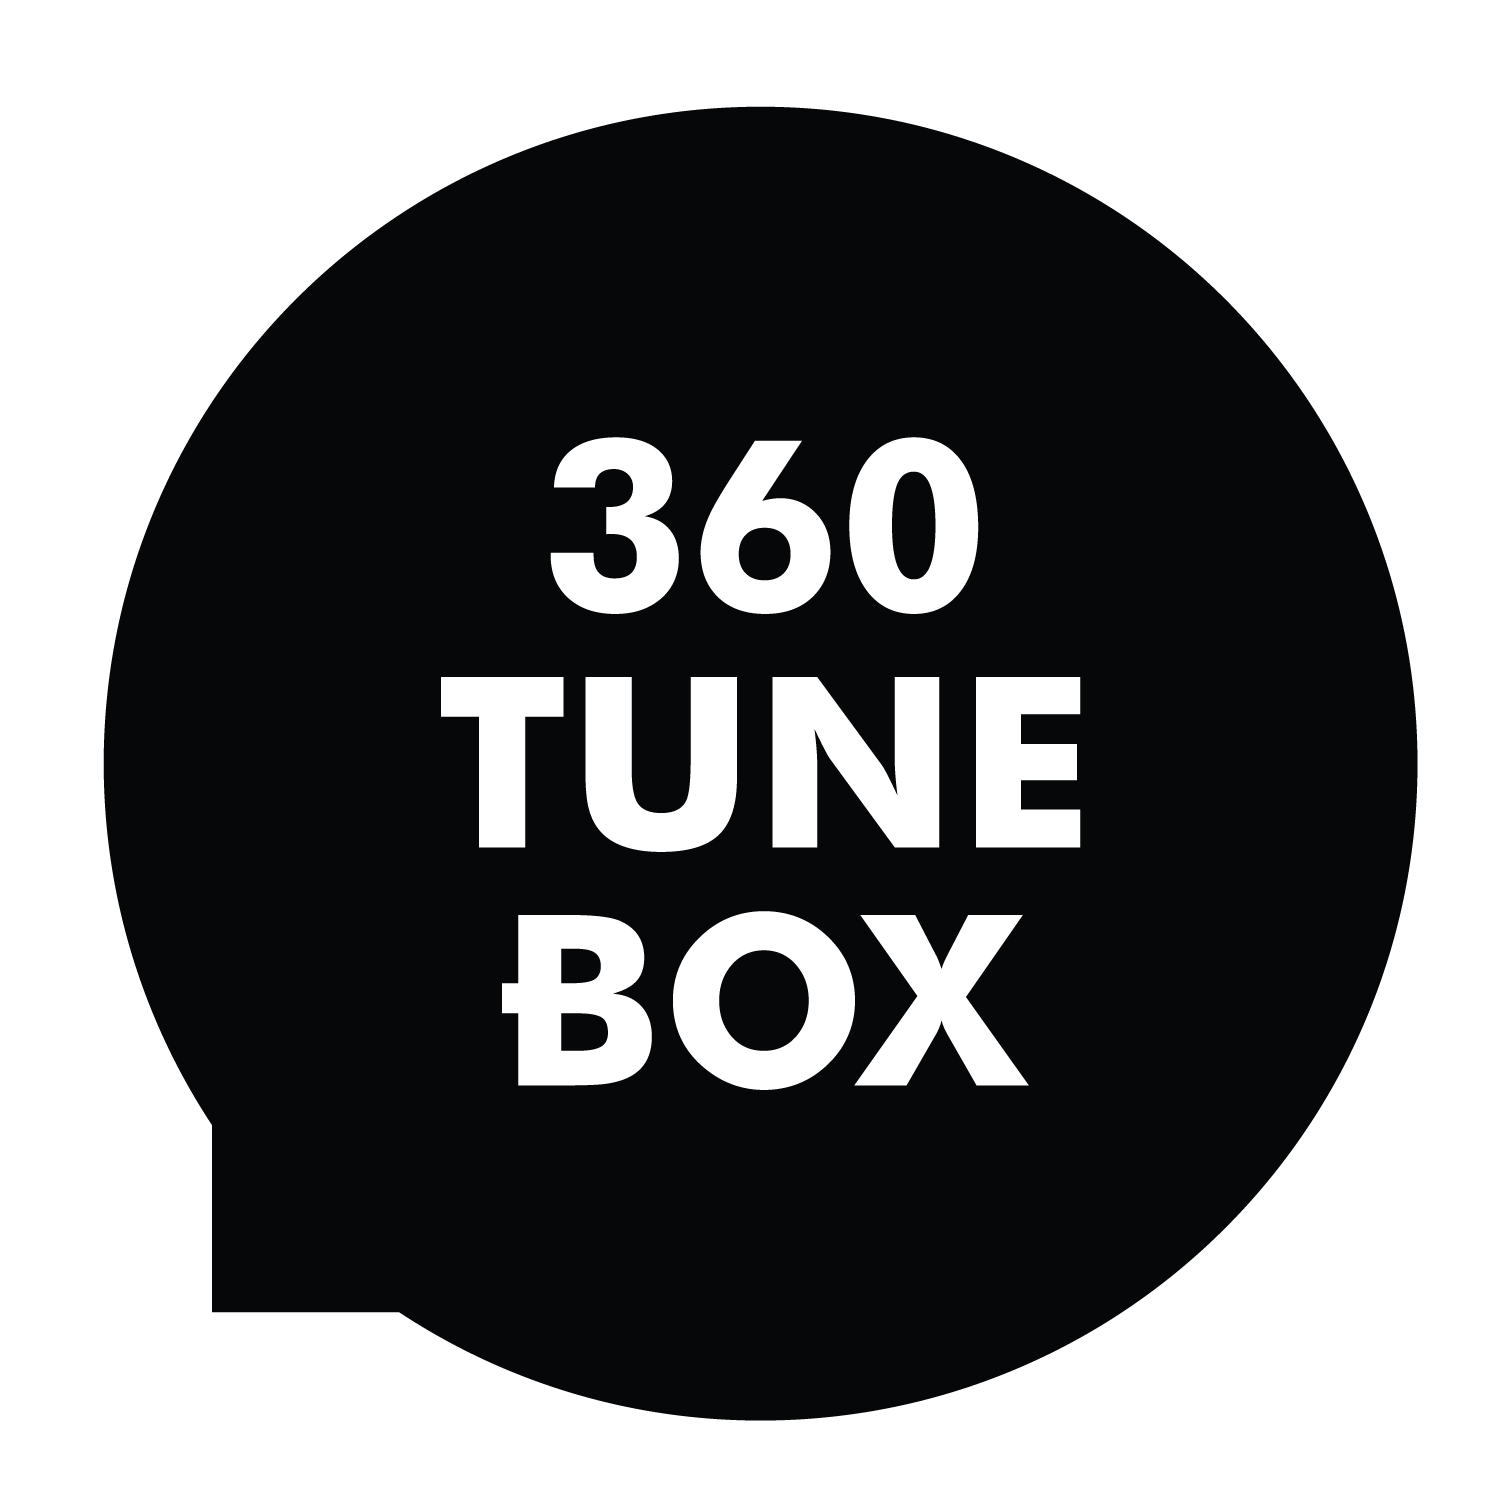 360_Tune_Box_Black